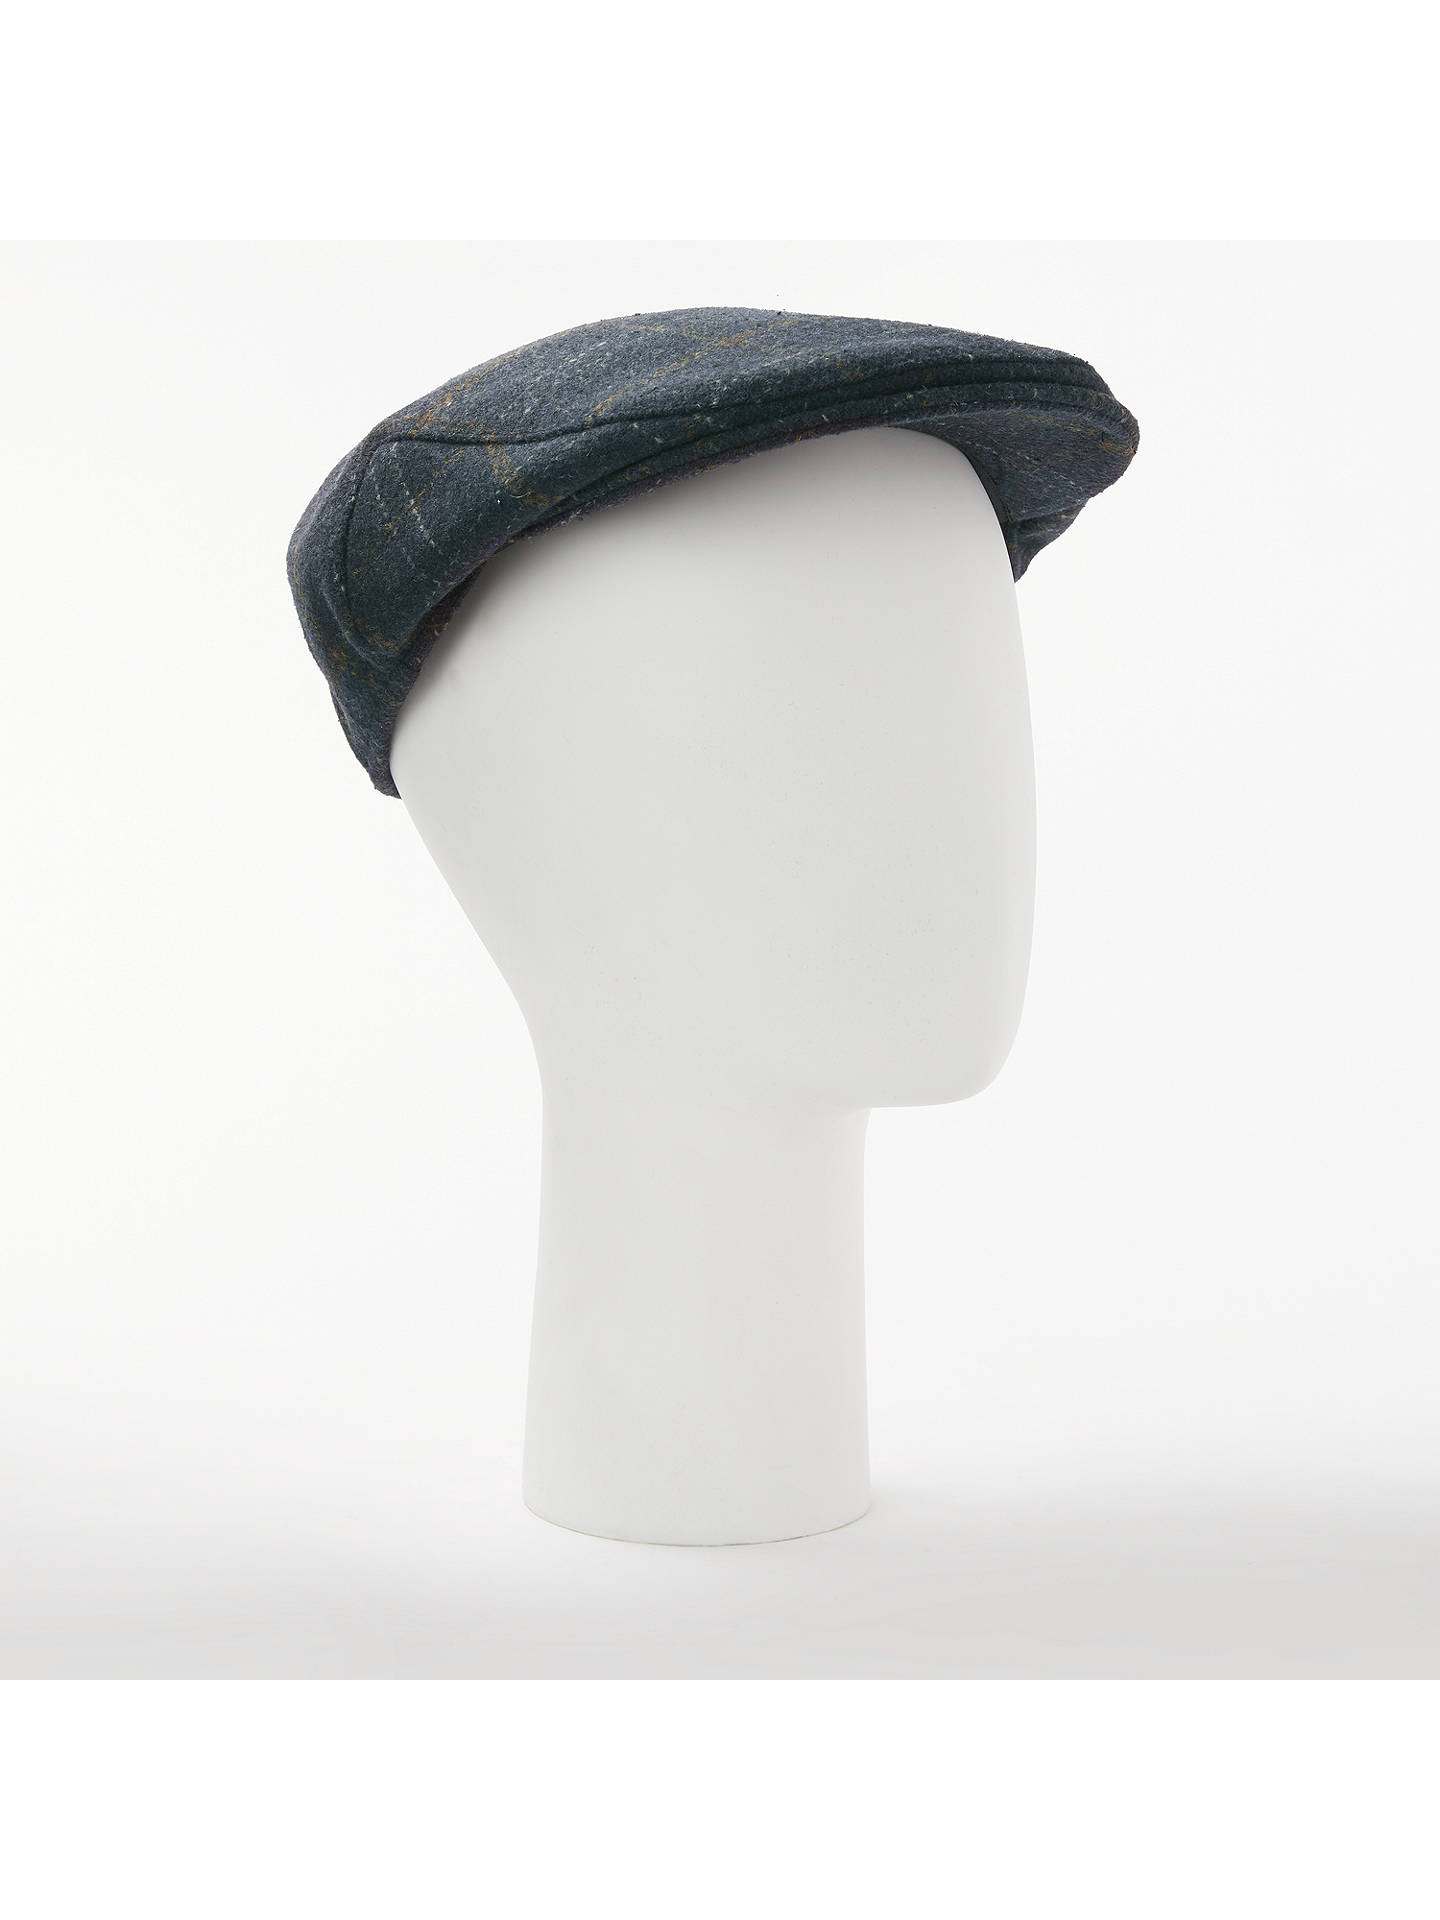 BuyJohn Lewis & Partners Check Flat Cap, Navy, S/M Online at johnlewis.com